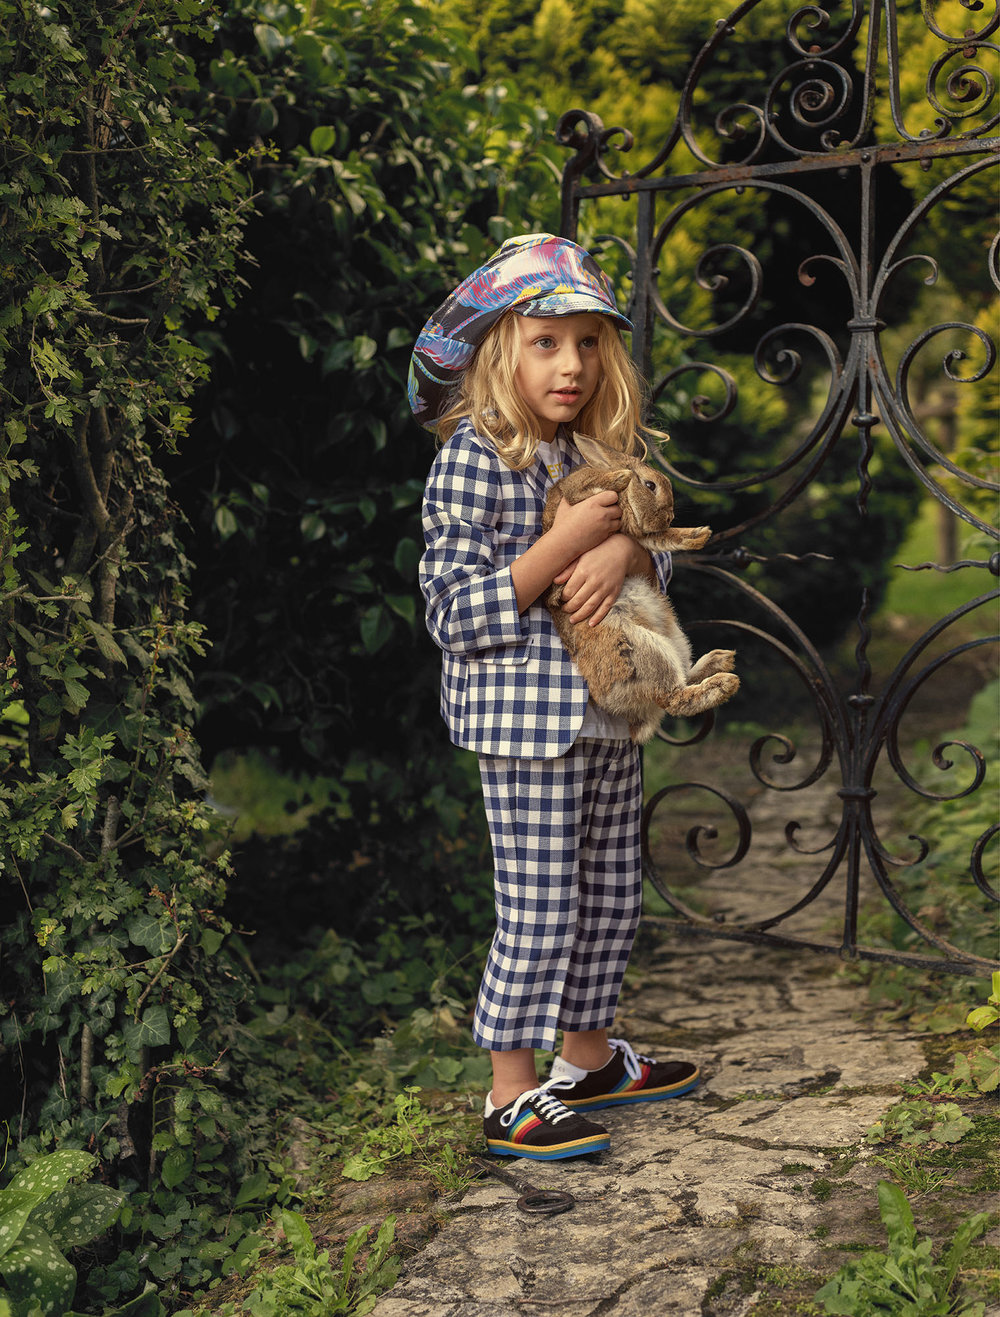 180828_Gucci Kids_12_#42_043_B.jpg